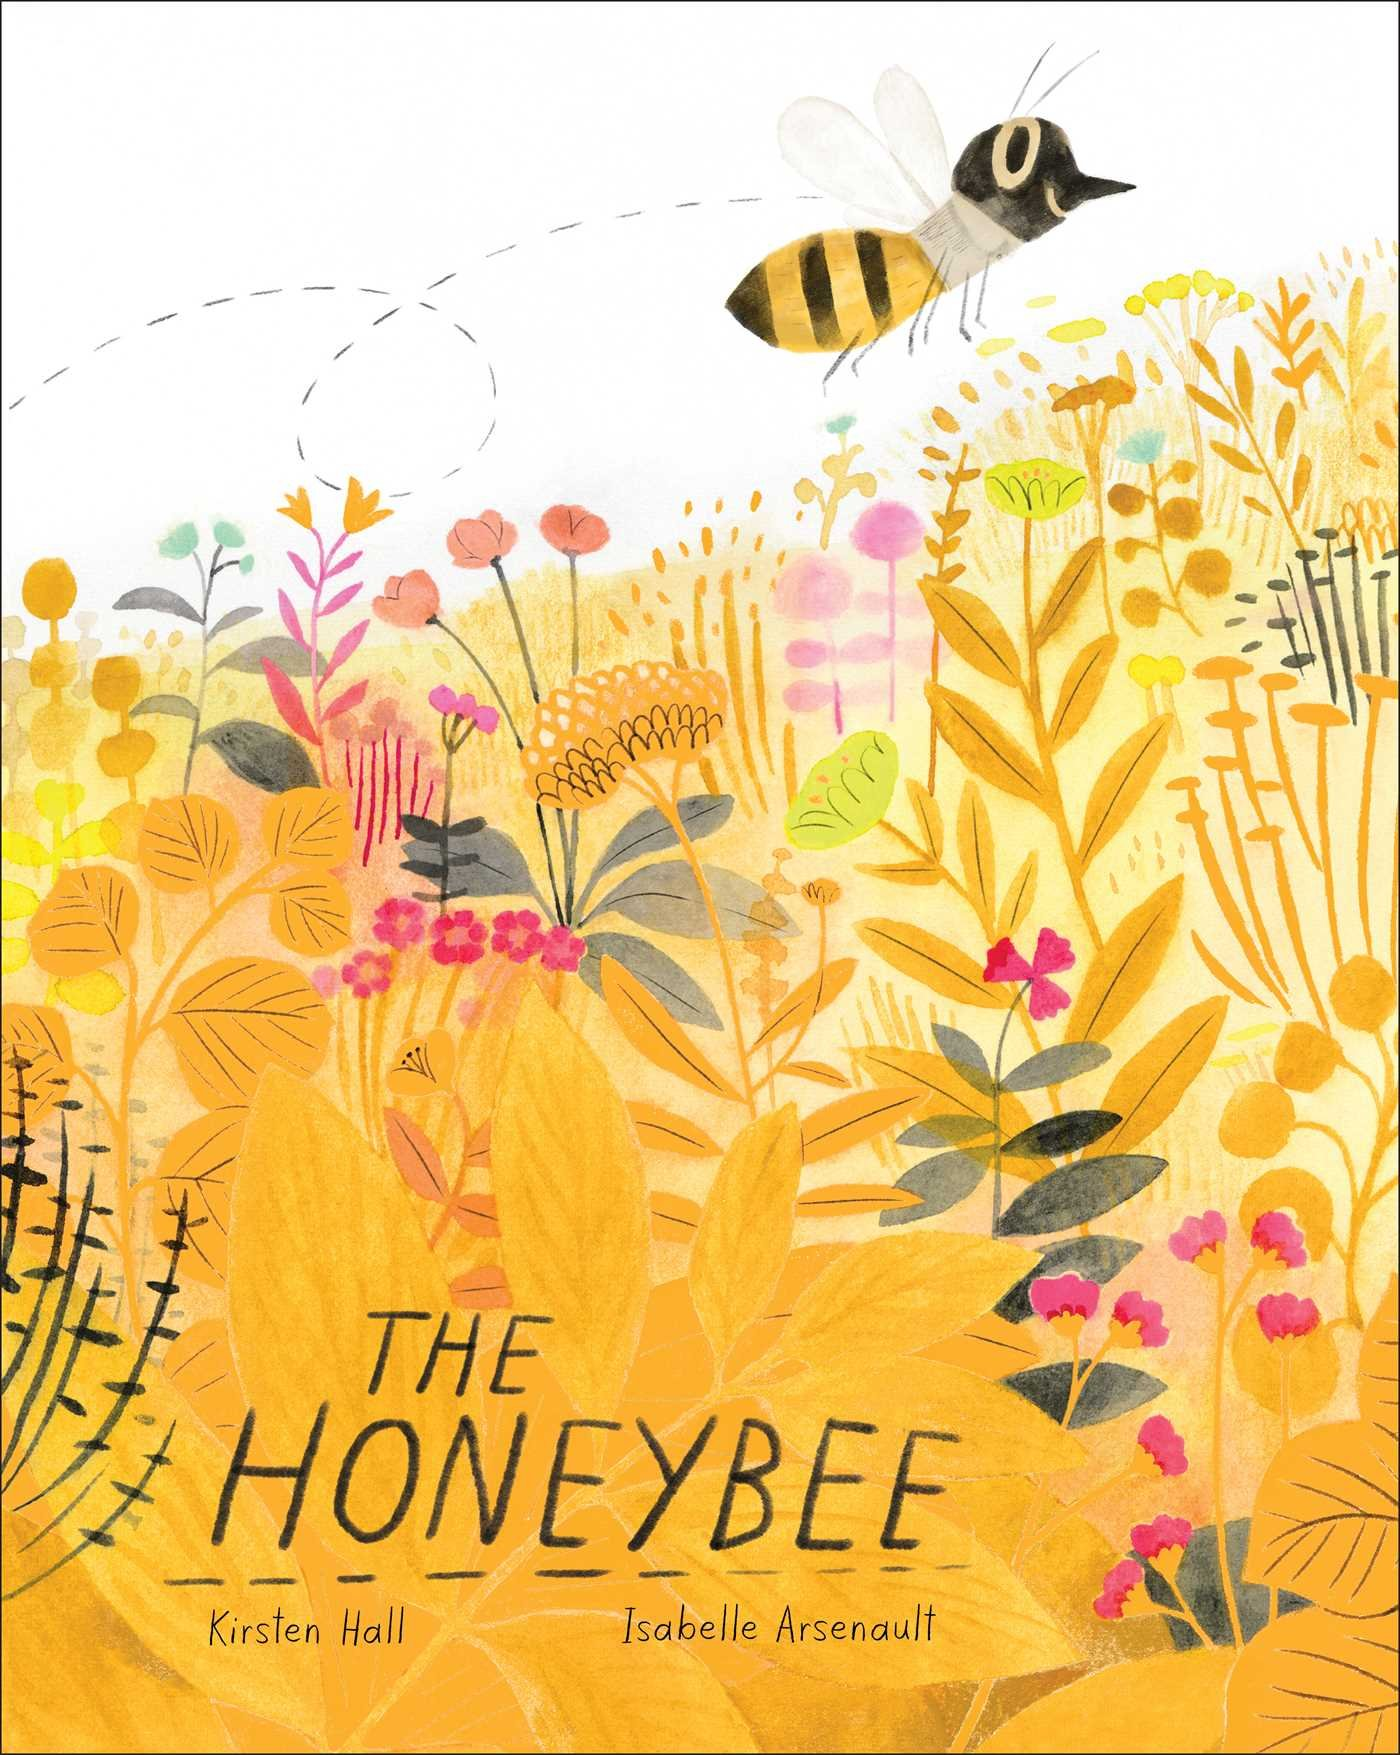 The Honeybee by Kirsten Hall and Isabelle Arsenault